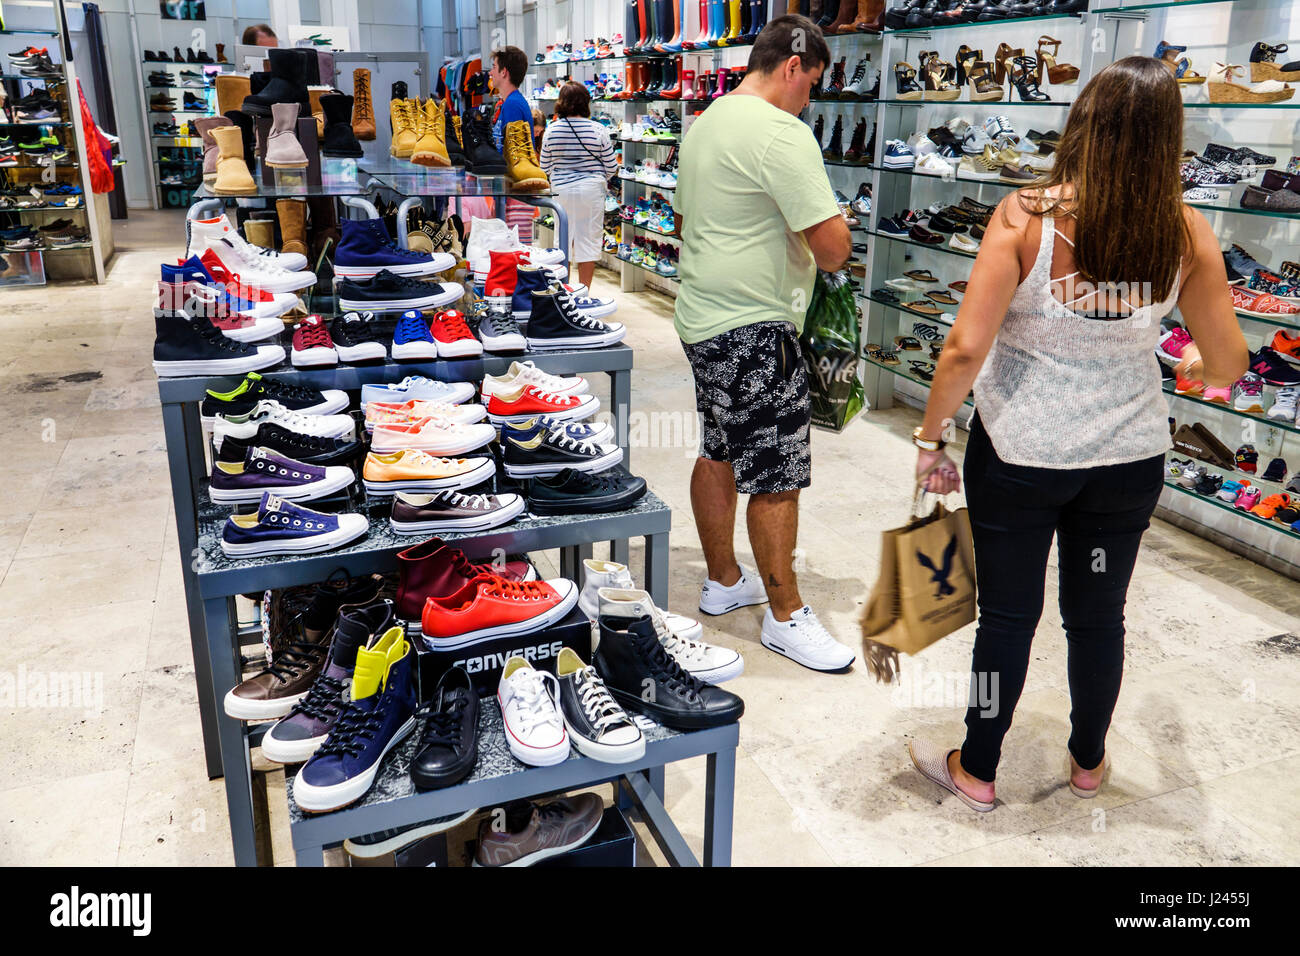 c4fccb86c526 Miami Beach Florida Lincoln Road store shopping shoes retail display  interior sneakers athletic shoes Converse lifestyle brand Hispanic man  woman cust